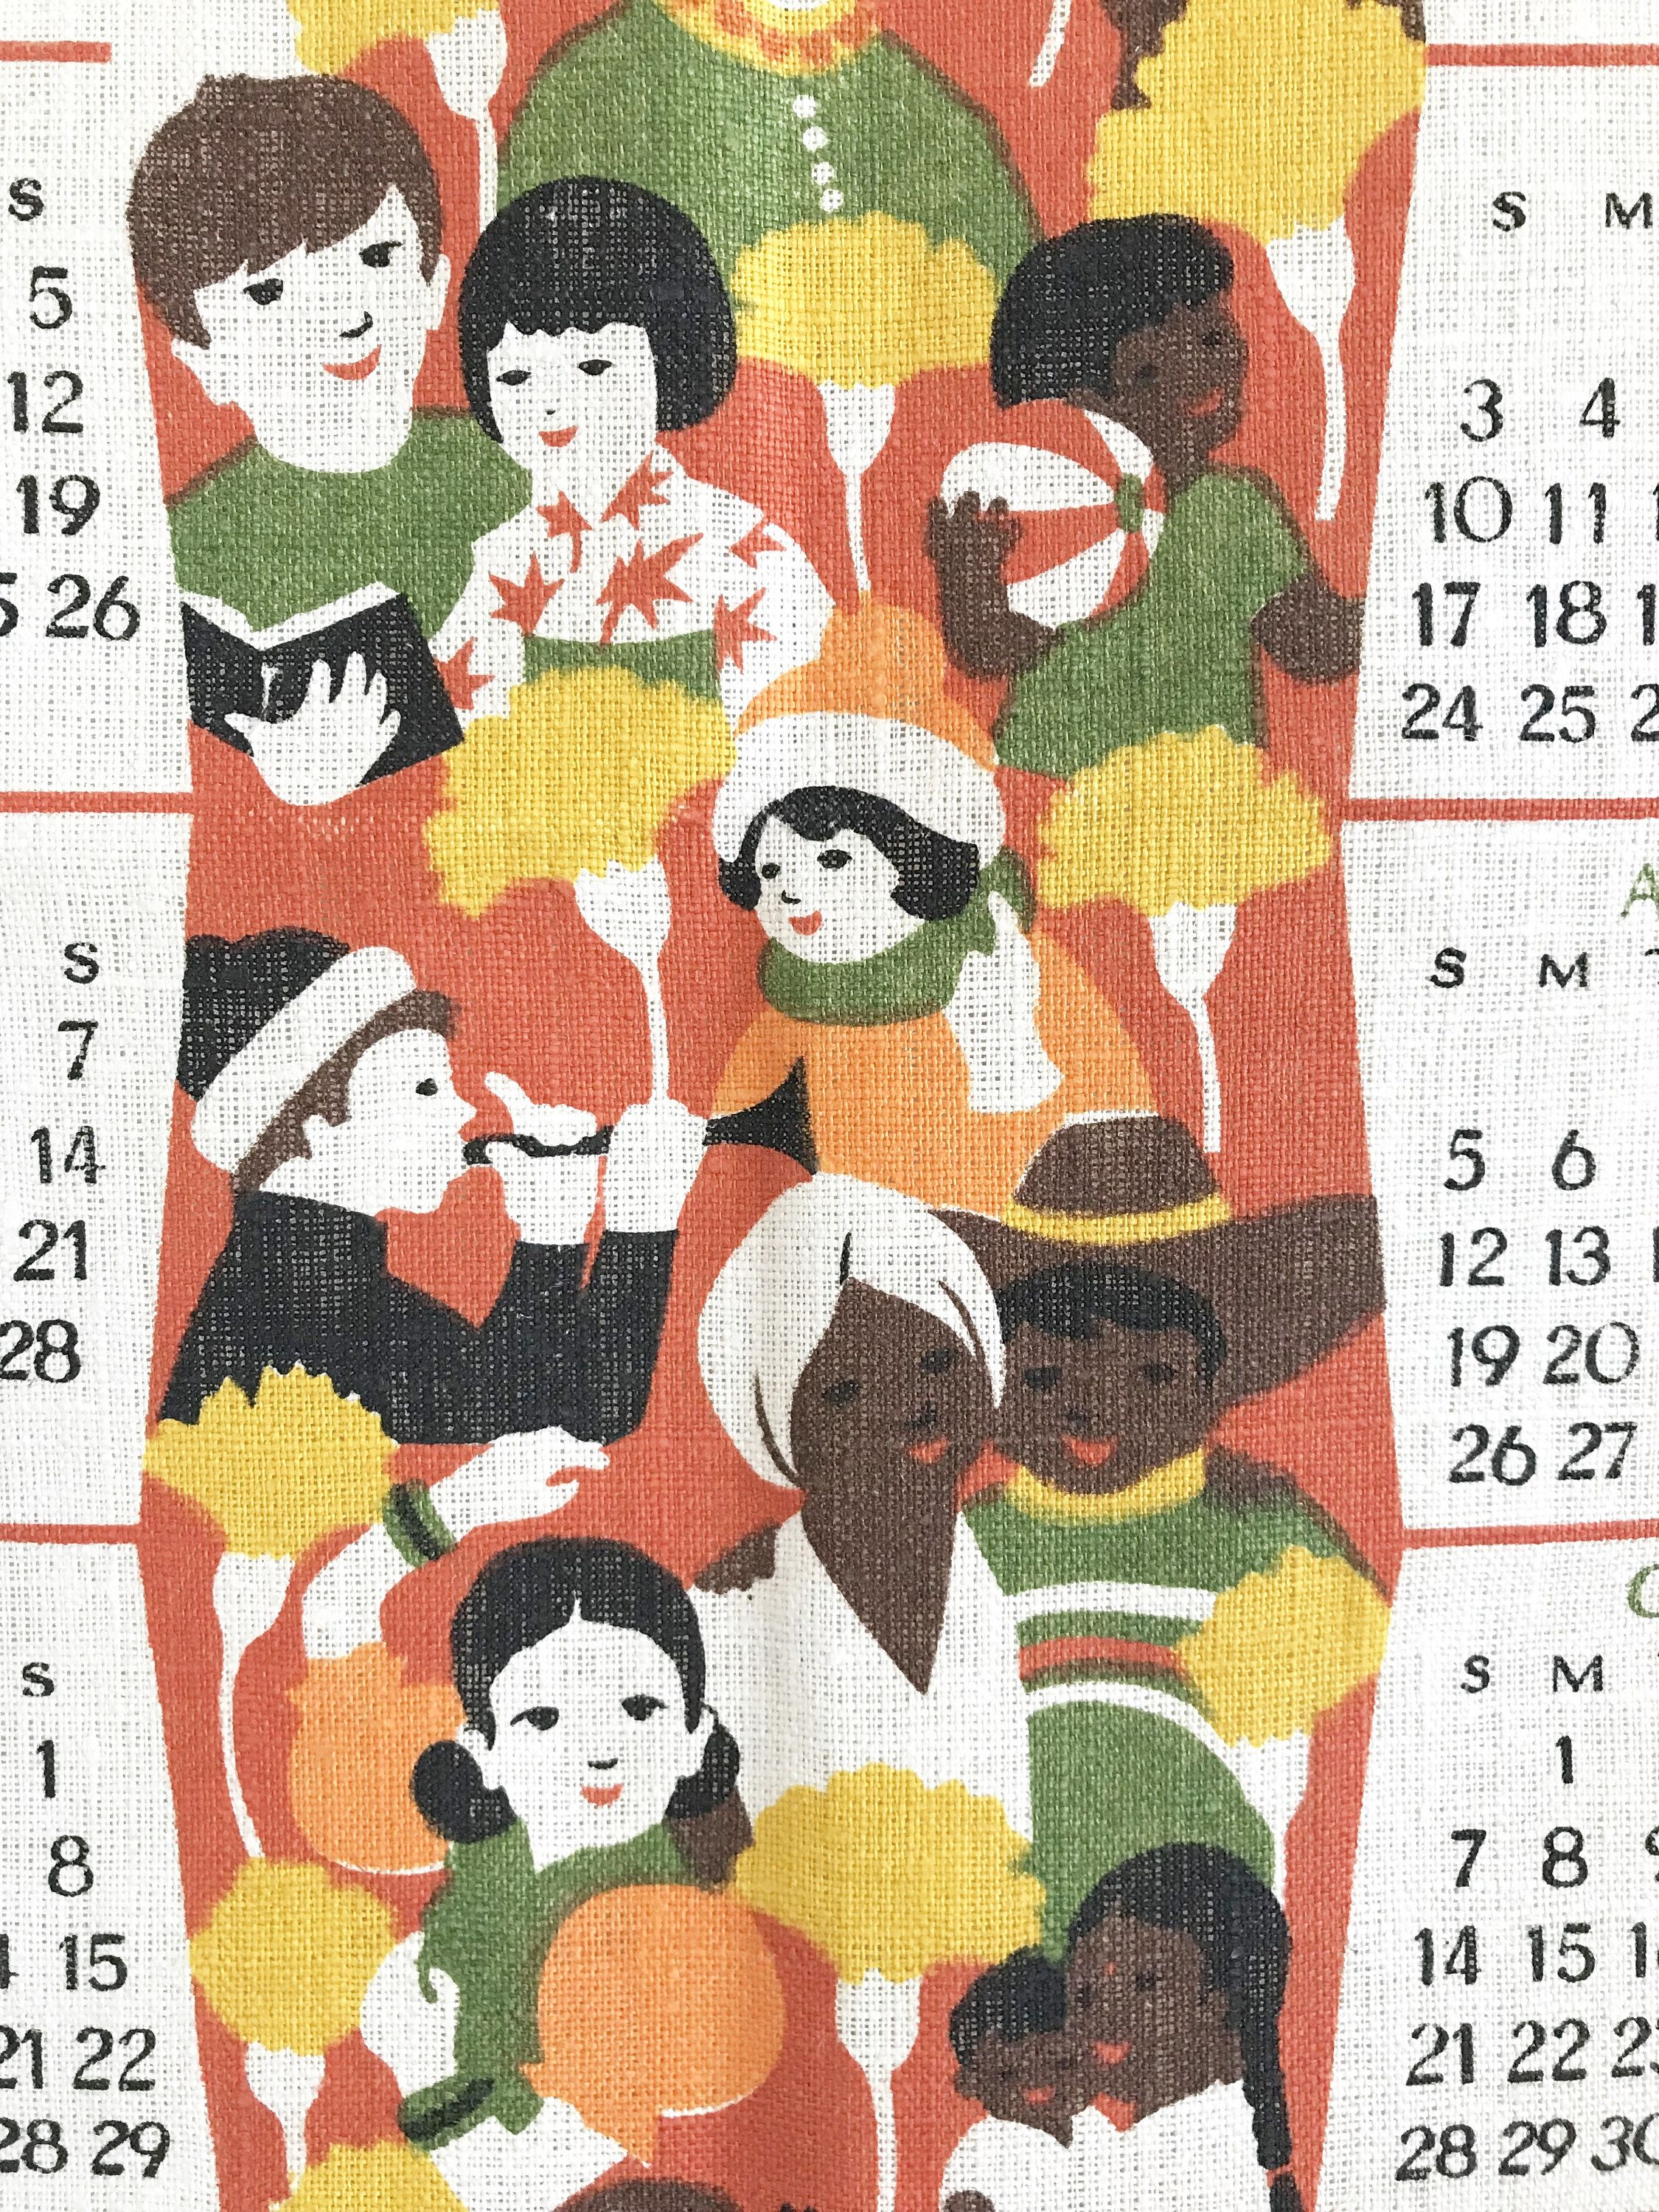 Vintage Calendar Towel 1979 Year Of The Child United Nations